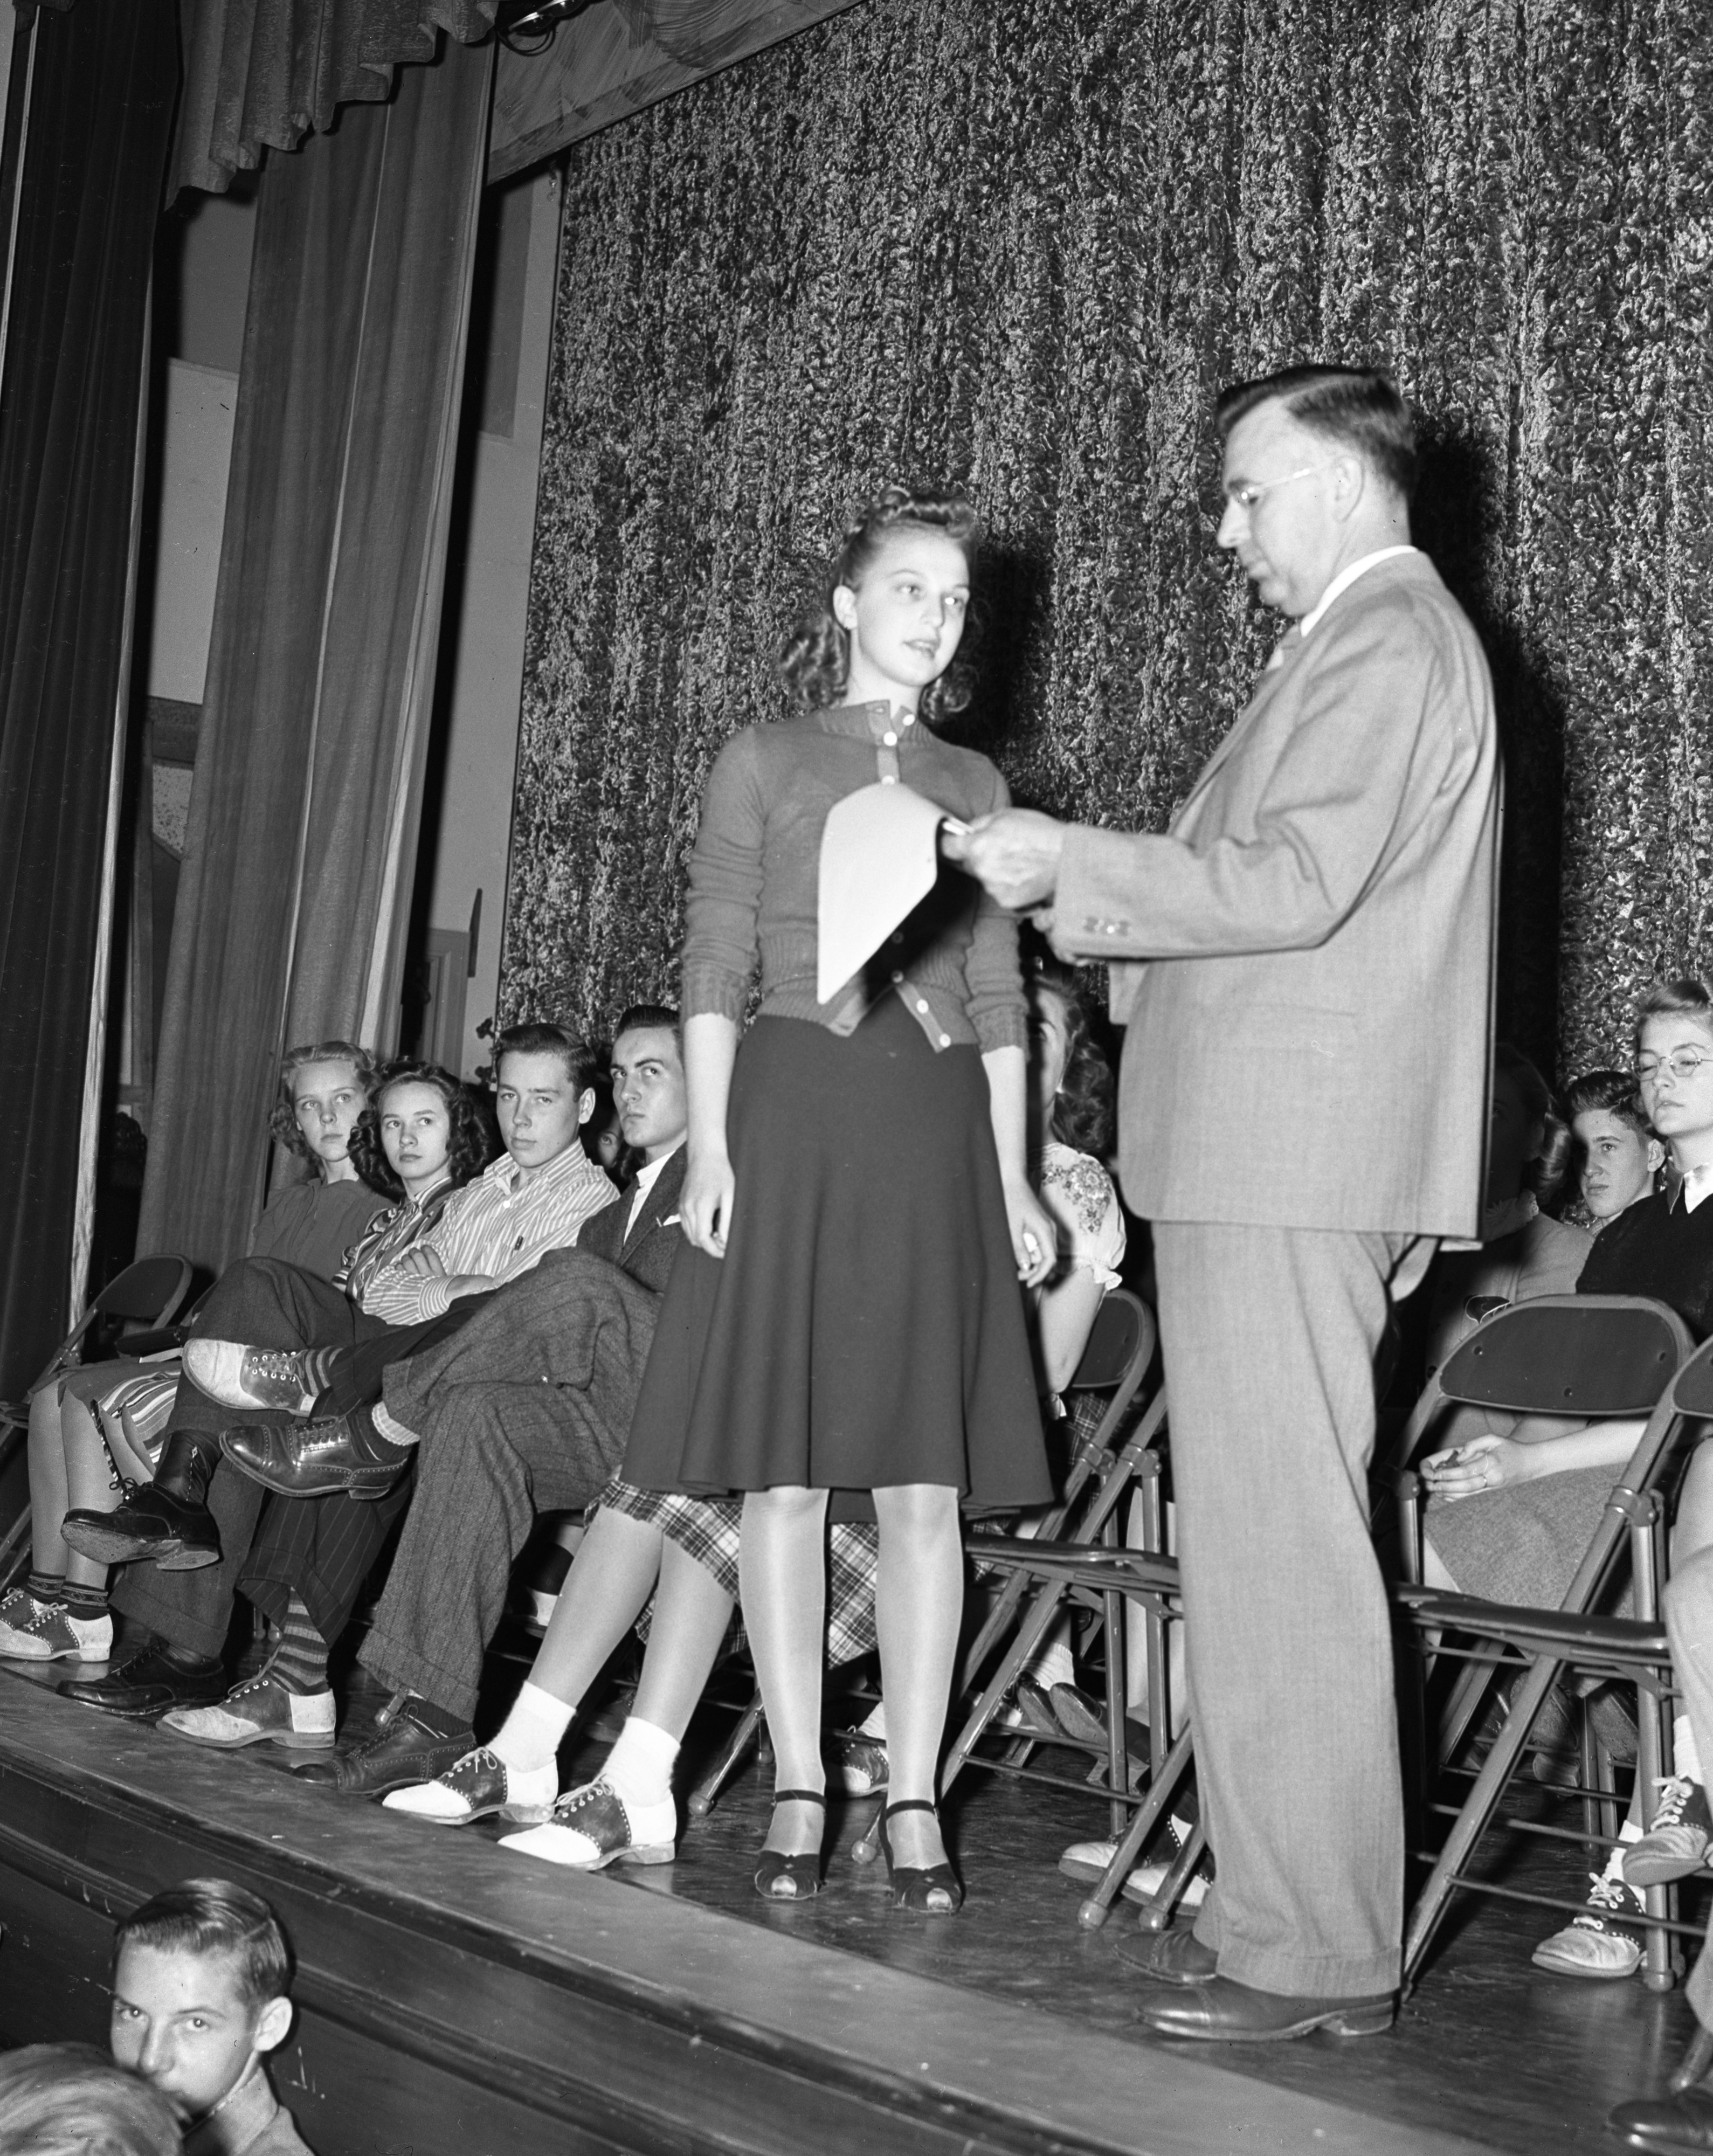 Swearing in Ann Arbor High School student council president, September 1939 image